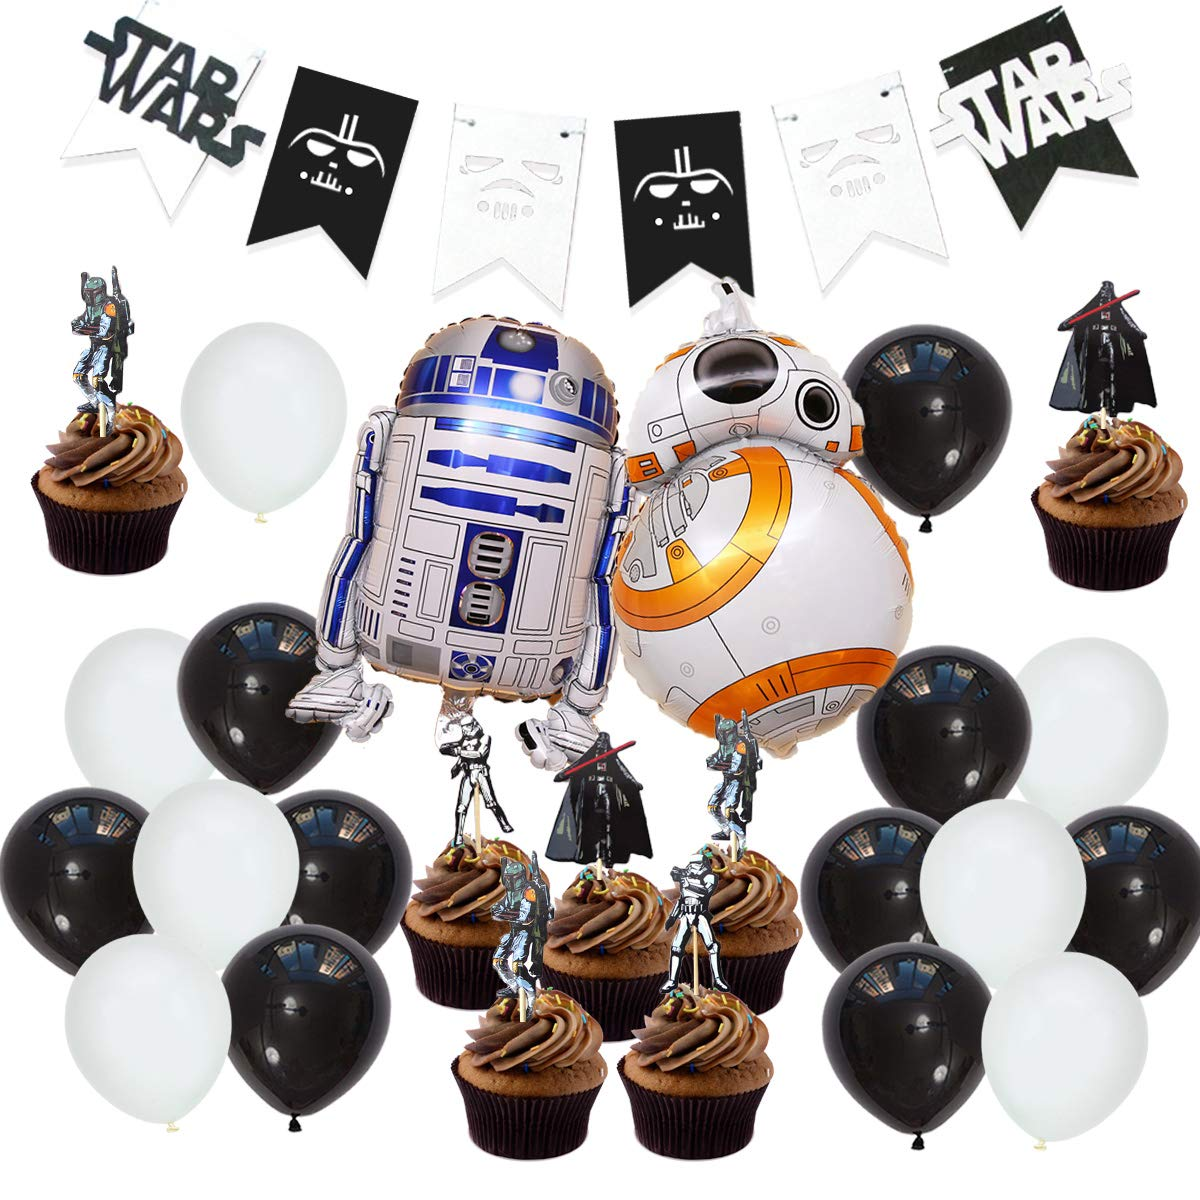 Swell Star Wars Party Supplies Decorations Star War Bunting Banner Personalised Birthday Cards Fashionlily Jamesorg